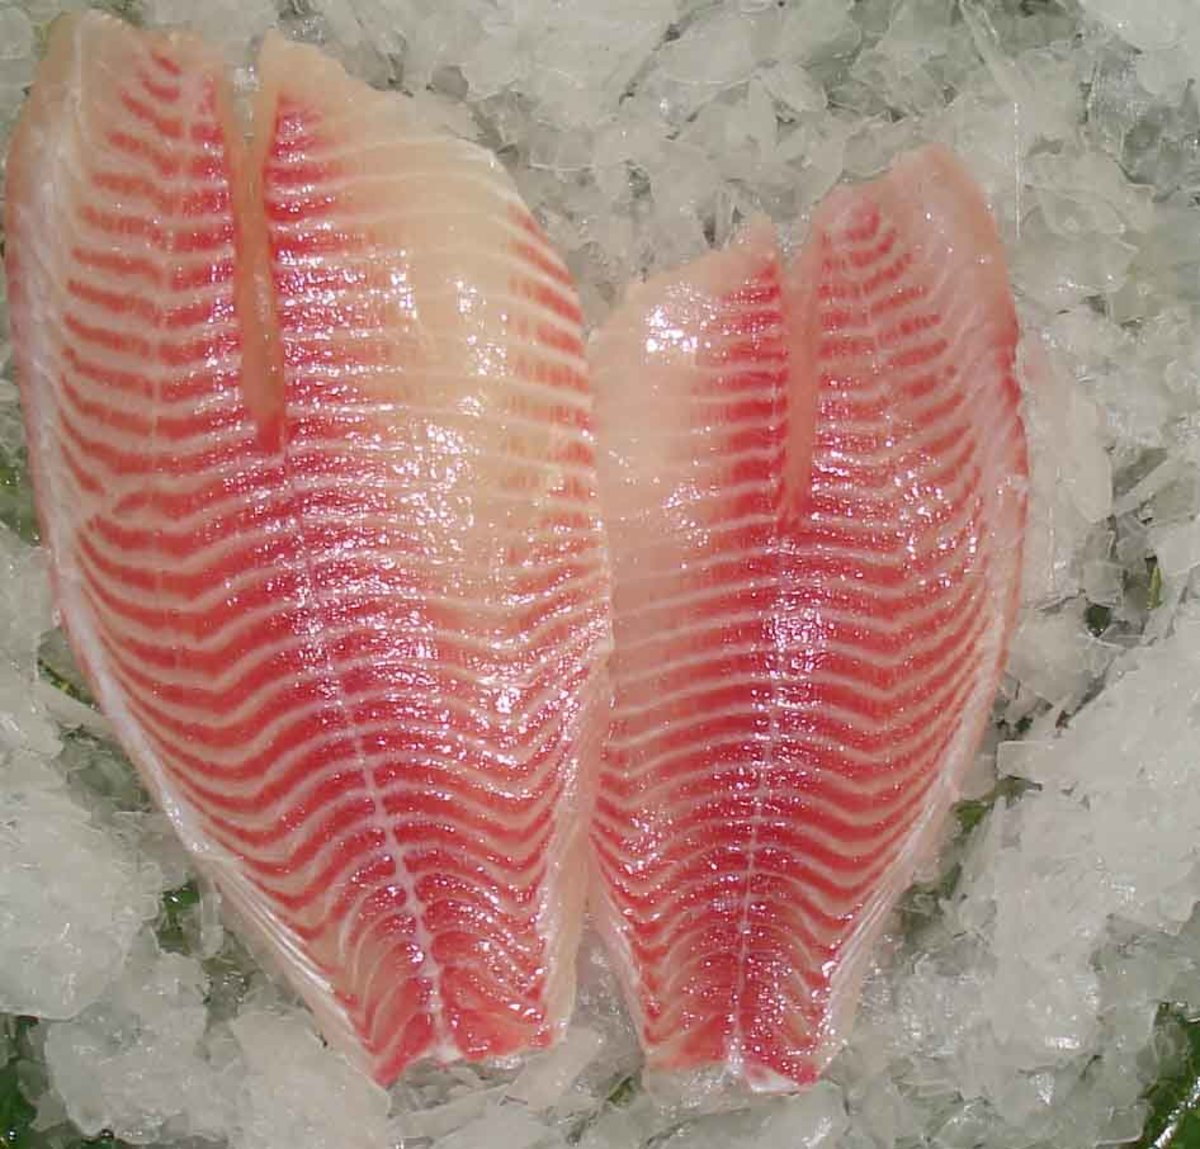 A typical Tilapia filet.